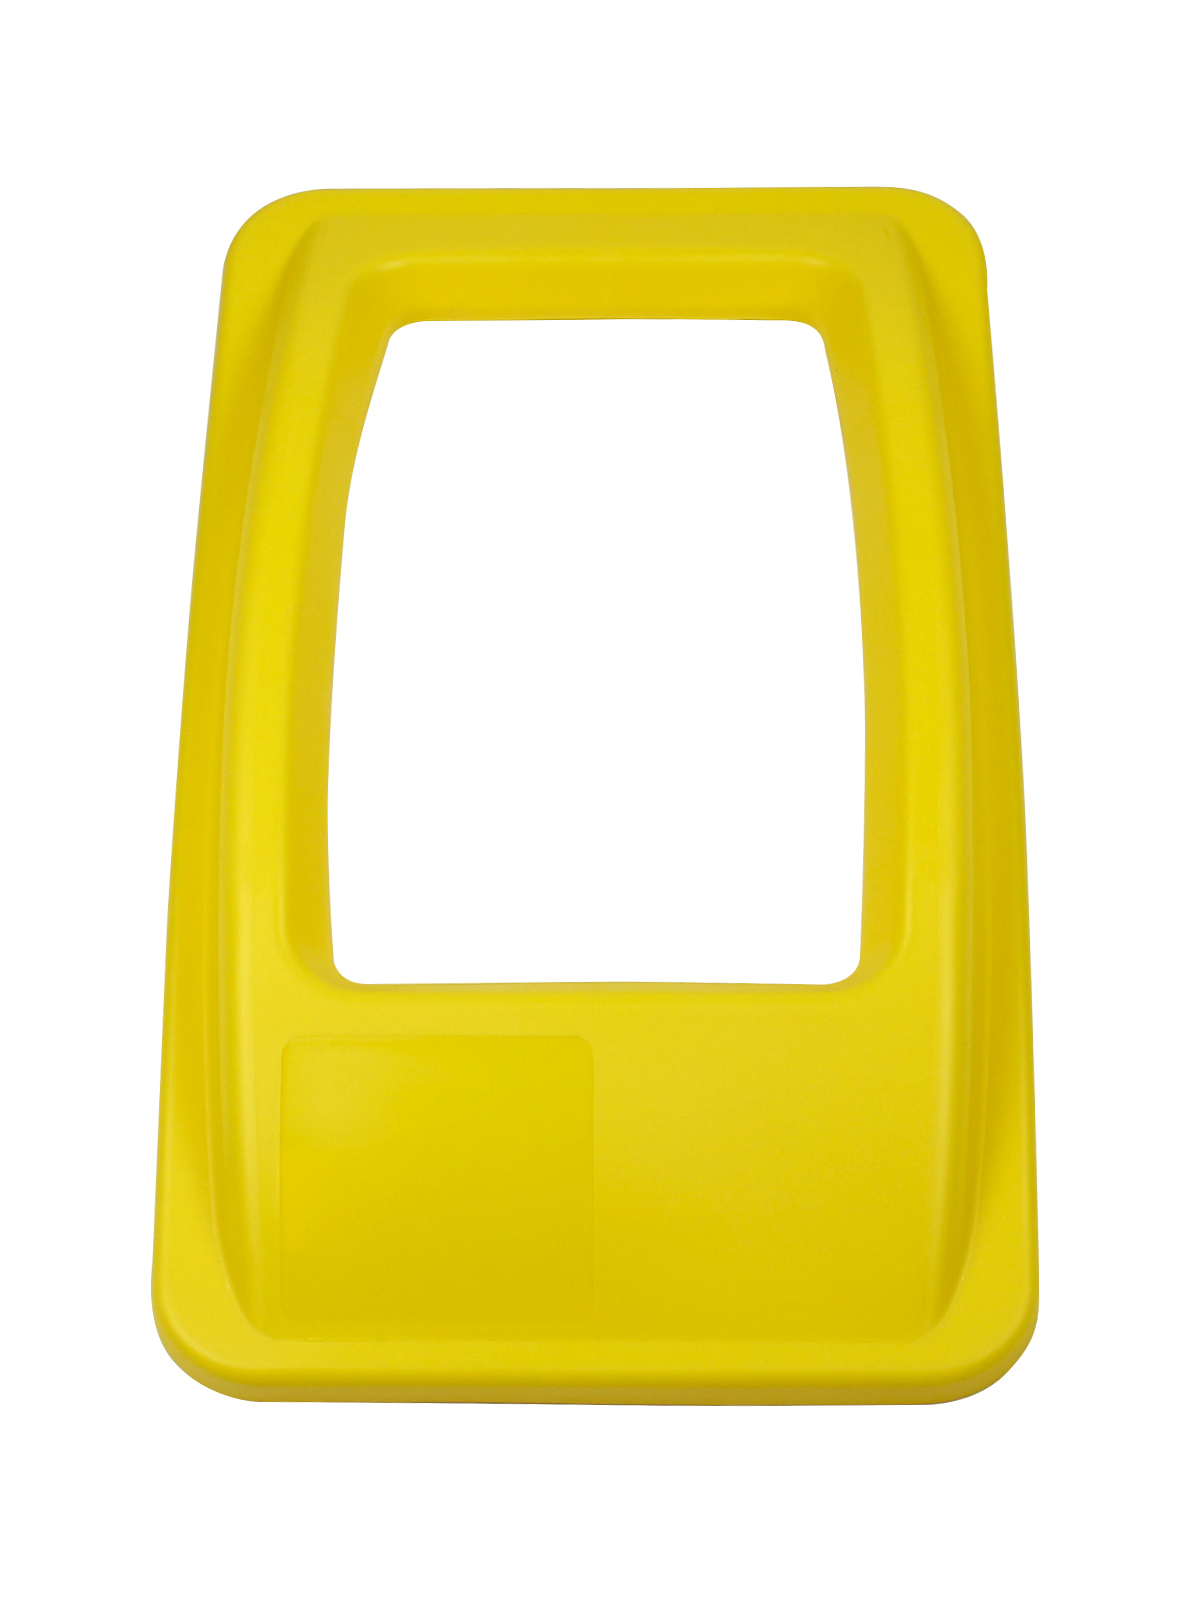 WASTE WATCHER - Single - Lid - Full - Yellow